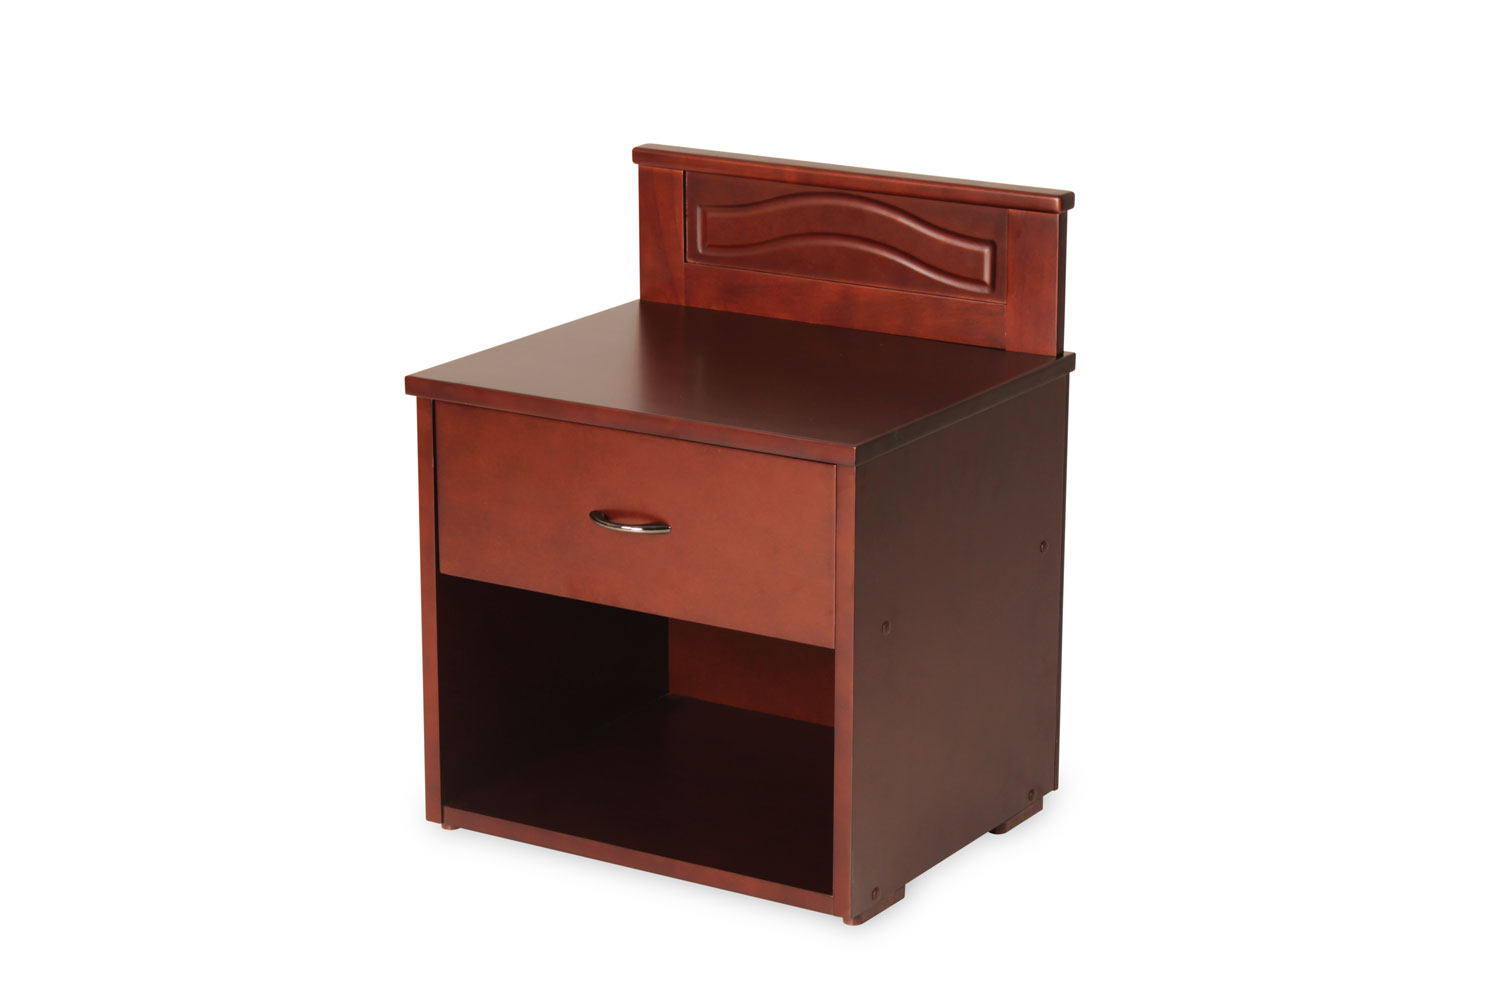 touchwood_ajantha_solidwood_bed_side_table_walnut_finish_2_4